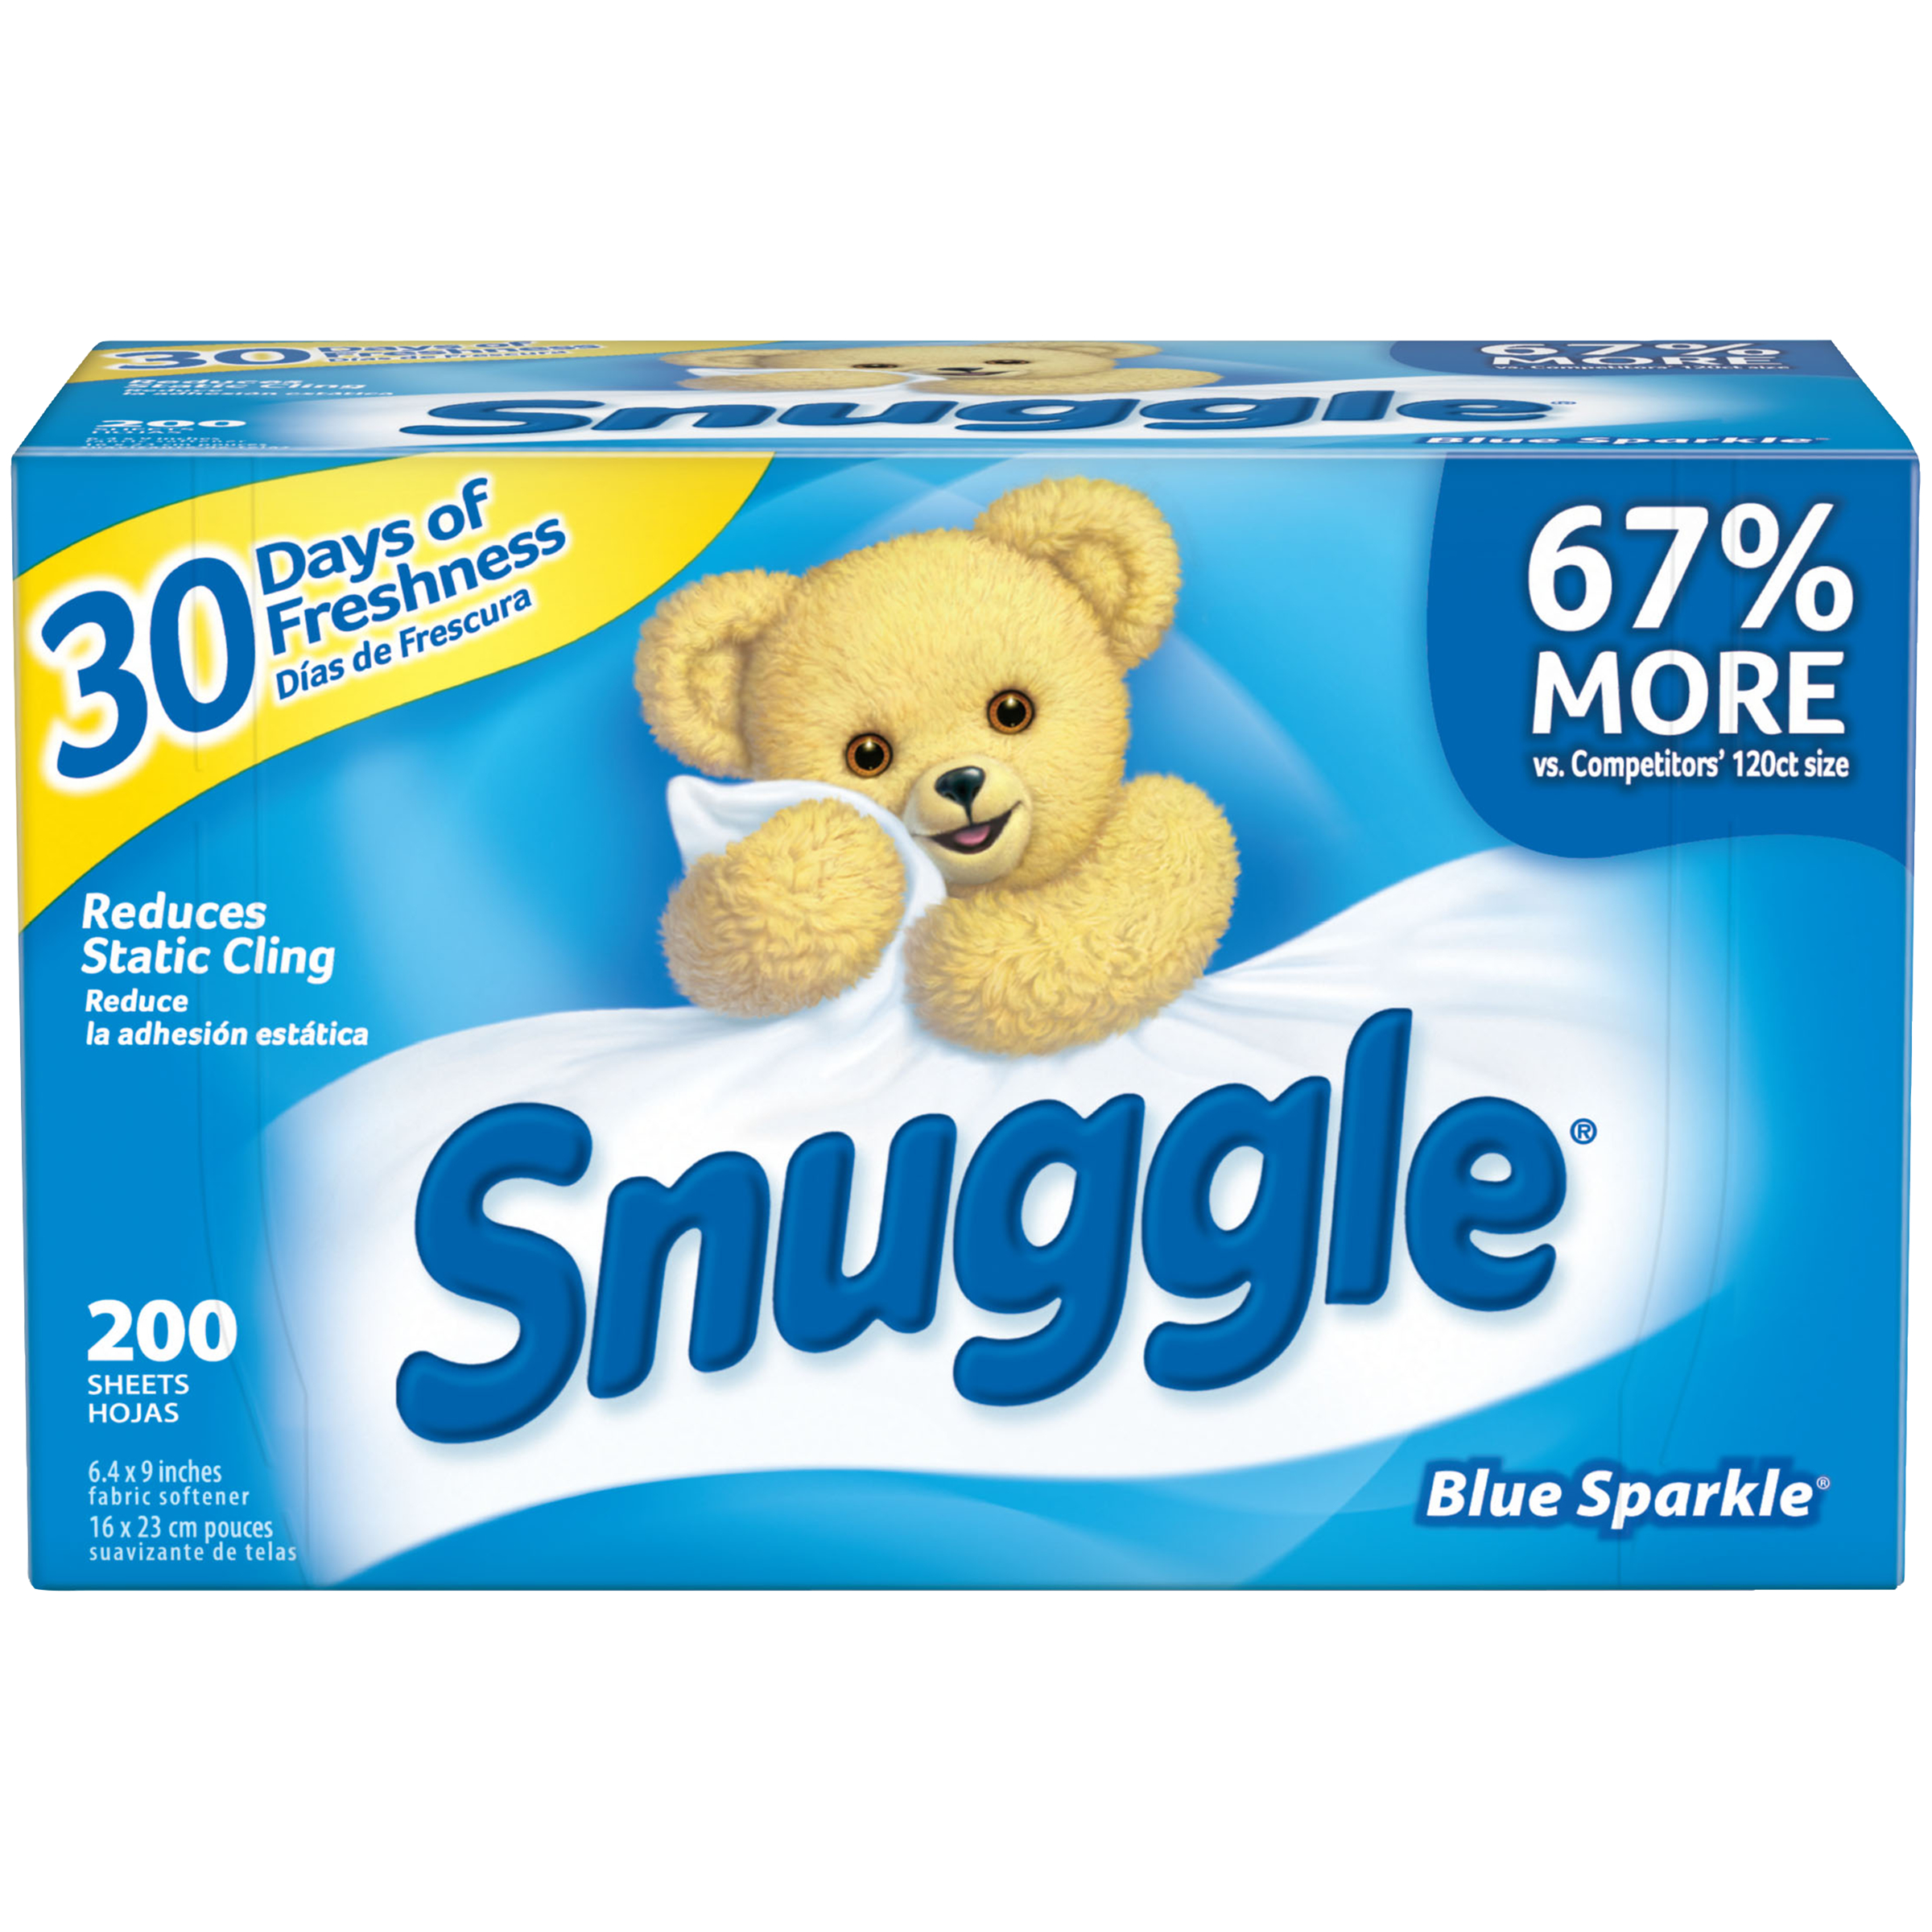 Snuggle Fabric Softener Sheets, Blue Sparkle, 200 Count